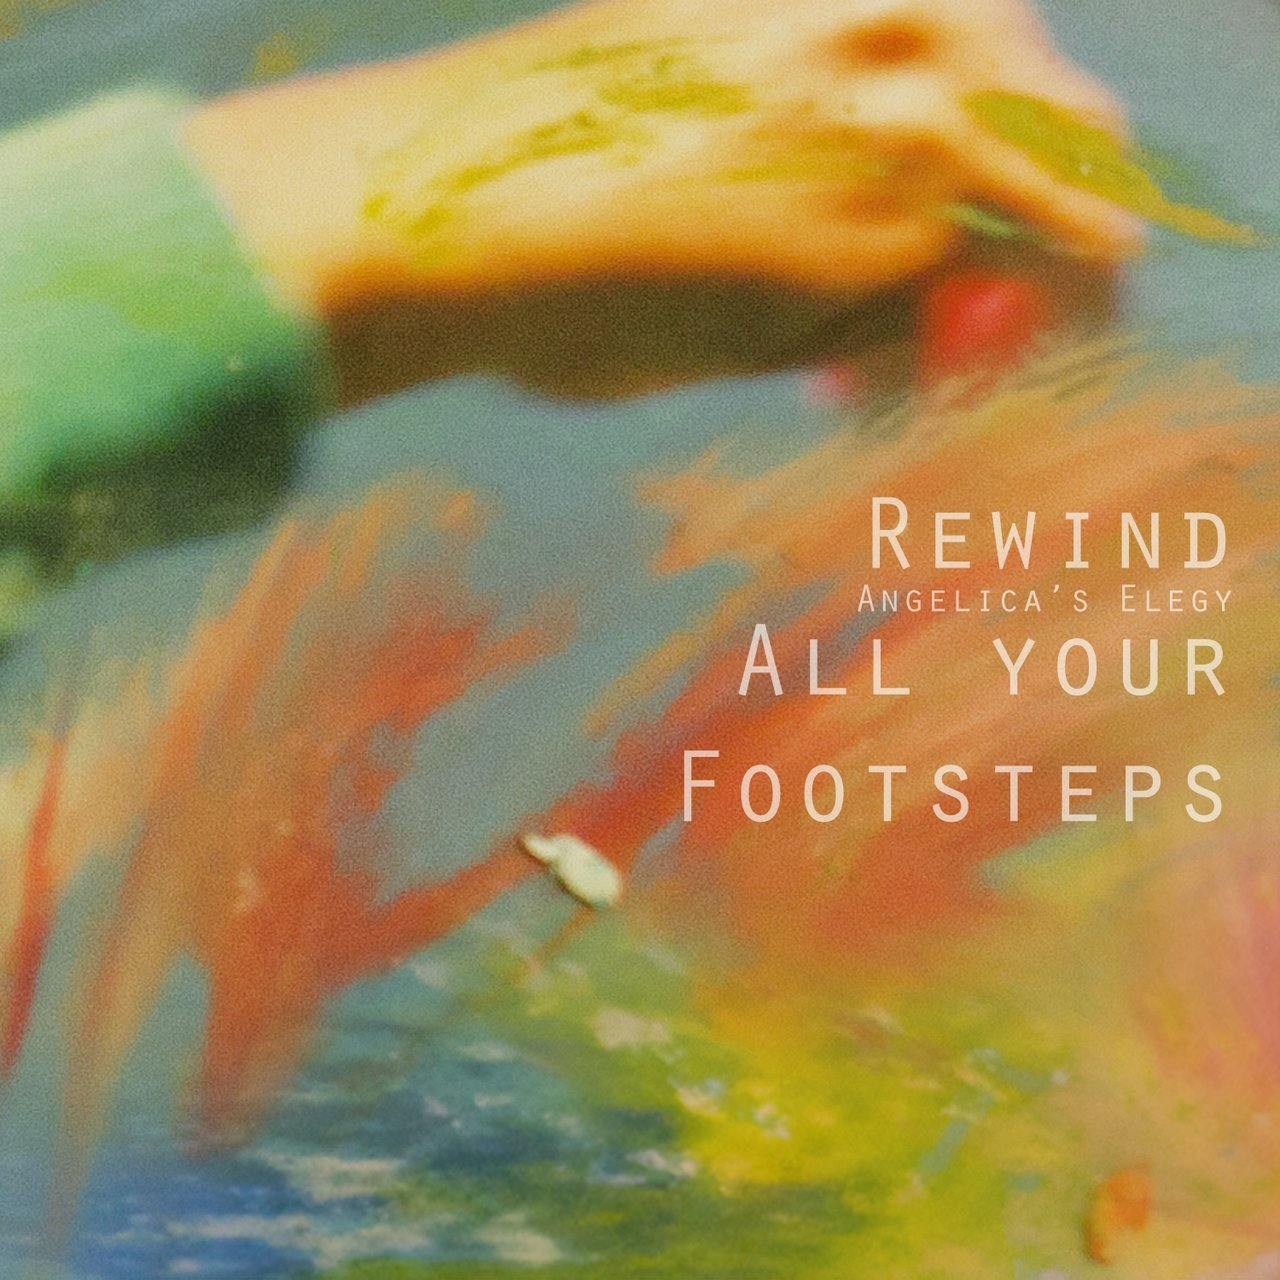 Rewind All Your Footsteps